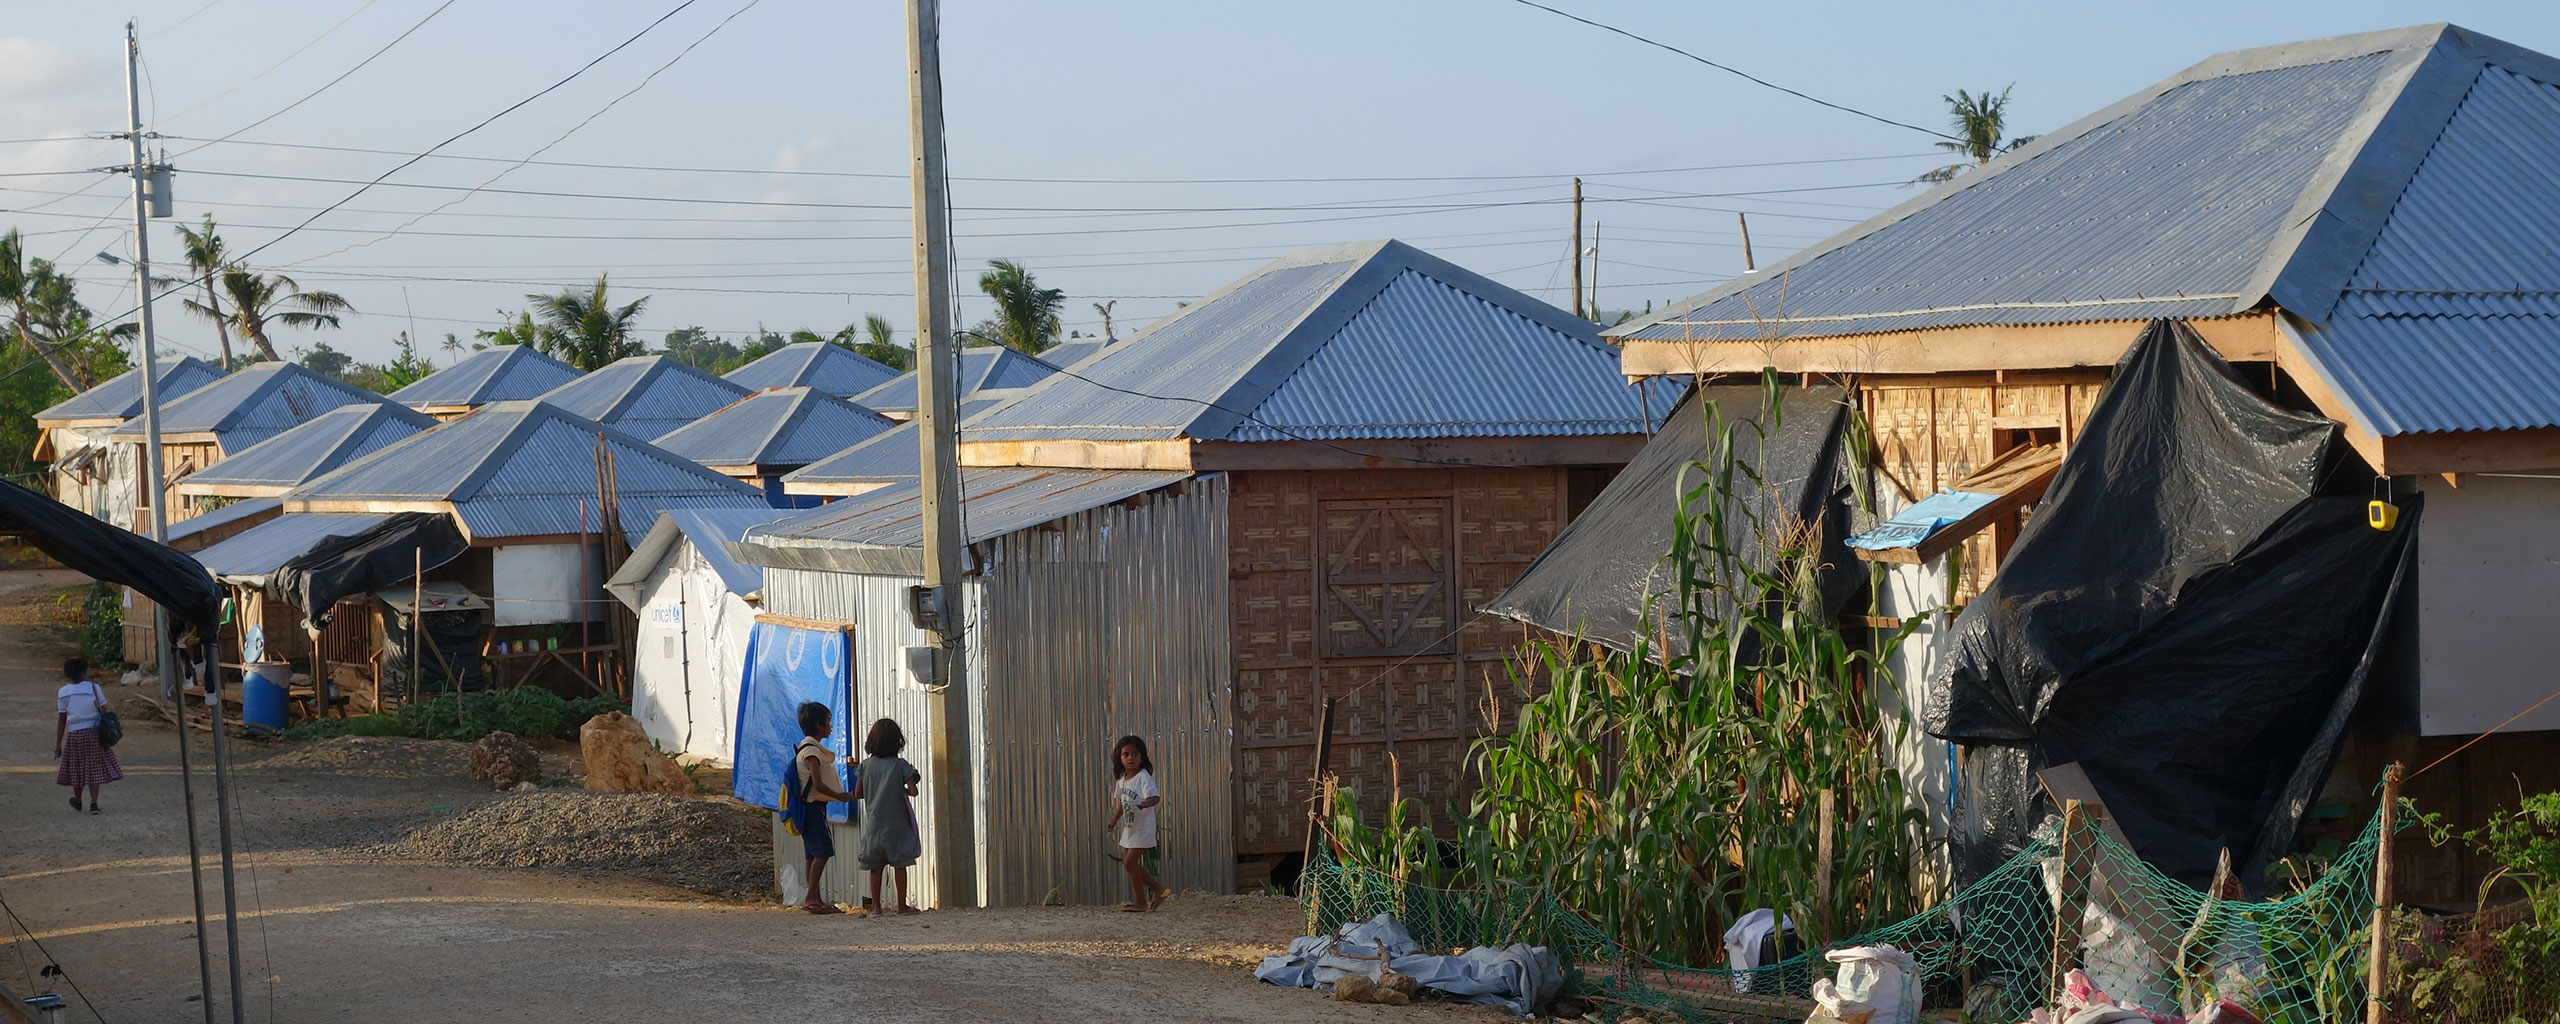 Resettlement housing in the Philippines